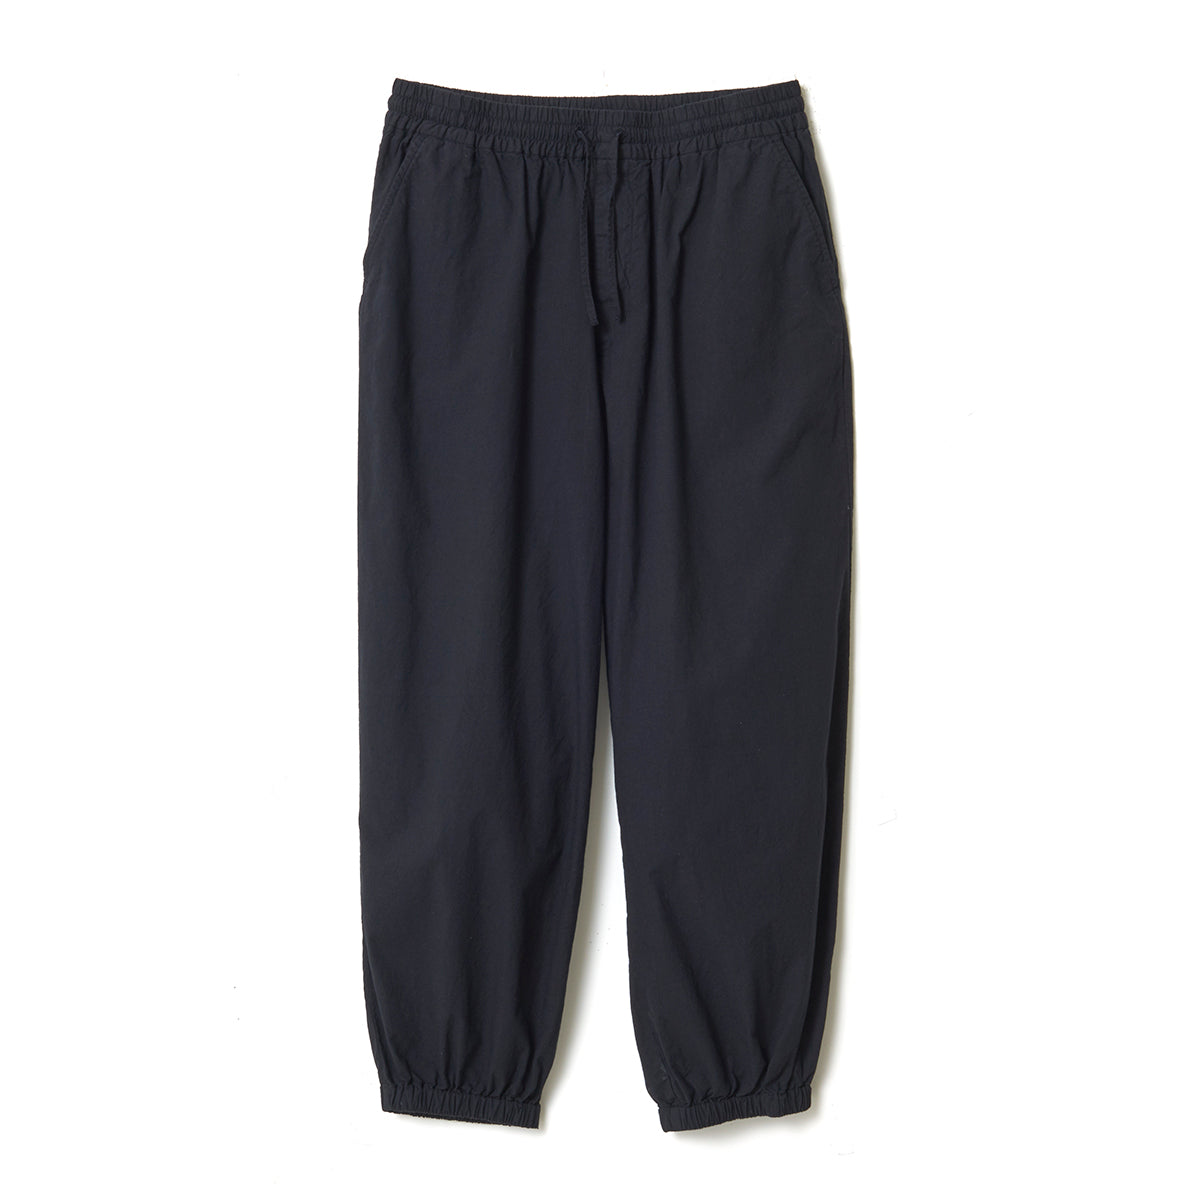 Wide Pants /  BLACK (20S-NSA-PT-07)